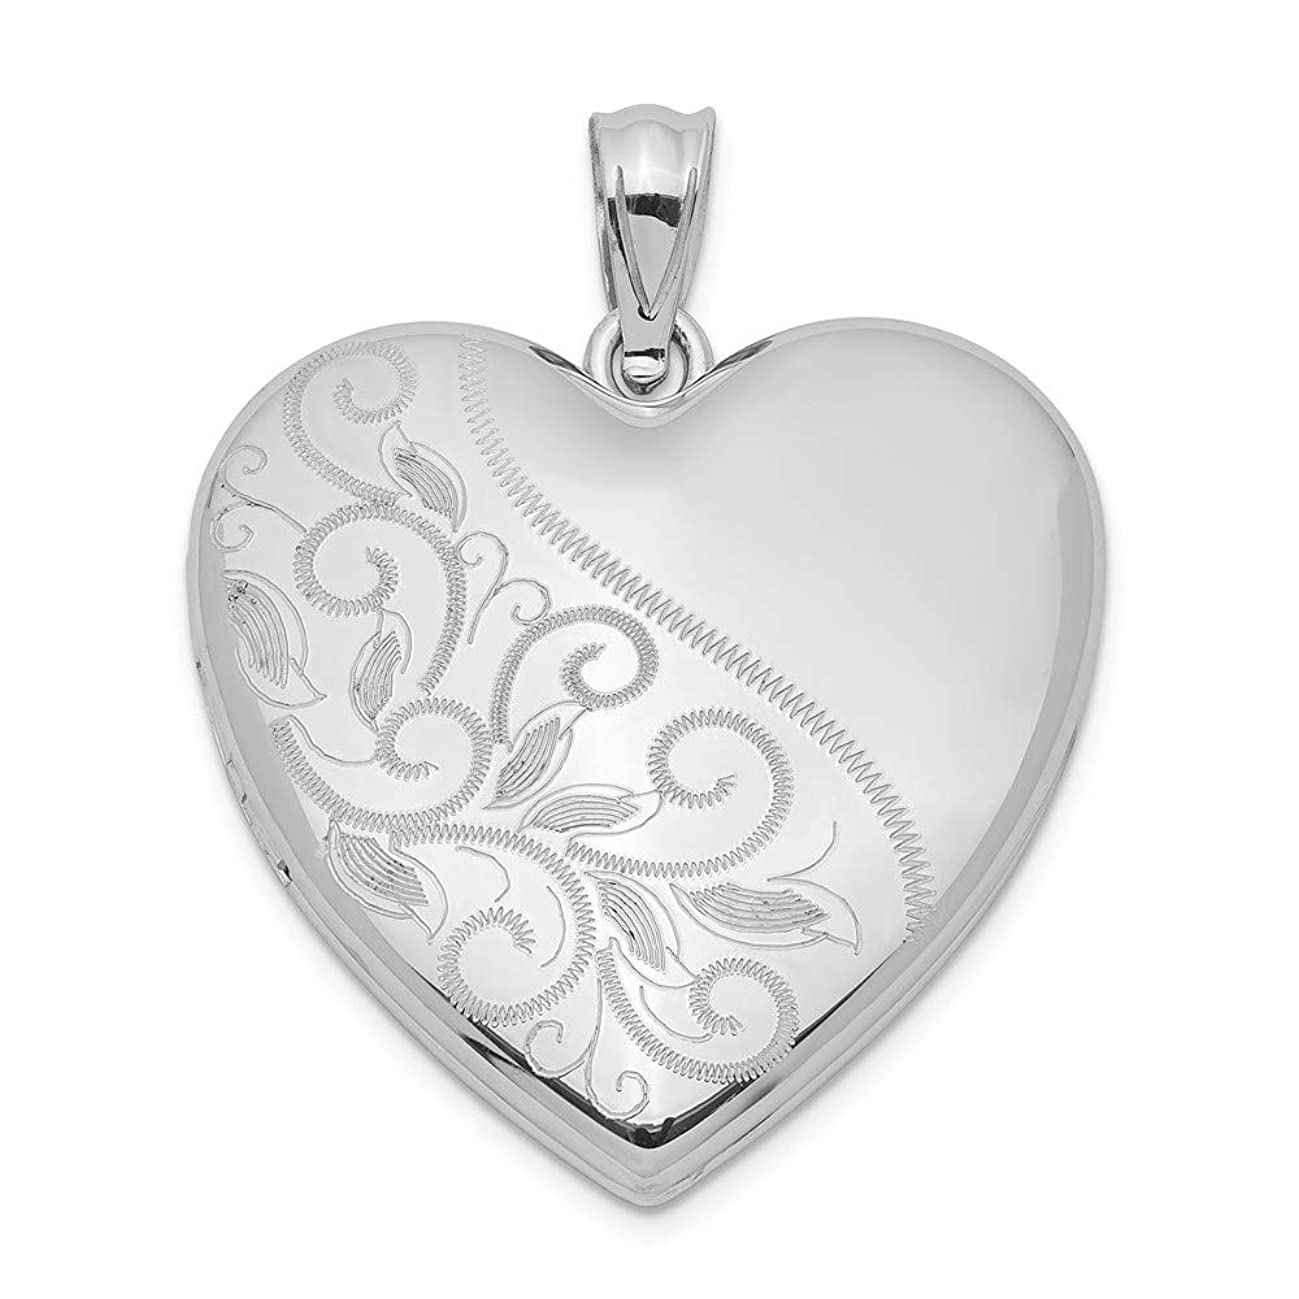 Jewelryweb 925 Sterling Silver Rhodium-plated Holds 4 photos 24mm Scrolled Heart Family Locket Necklace (24mm x 30mm)